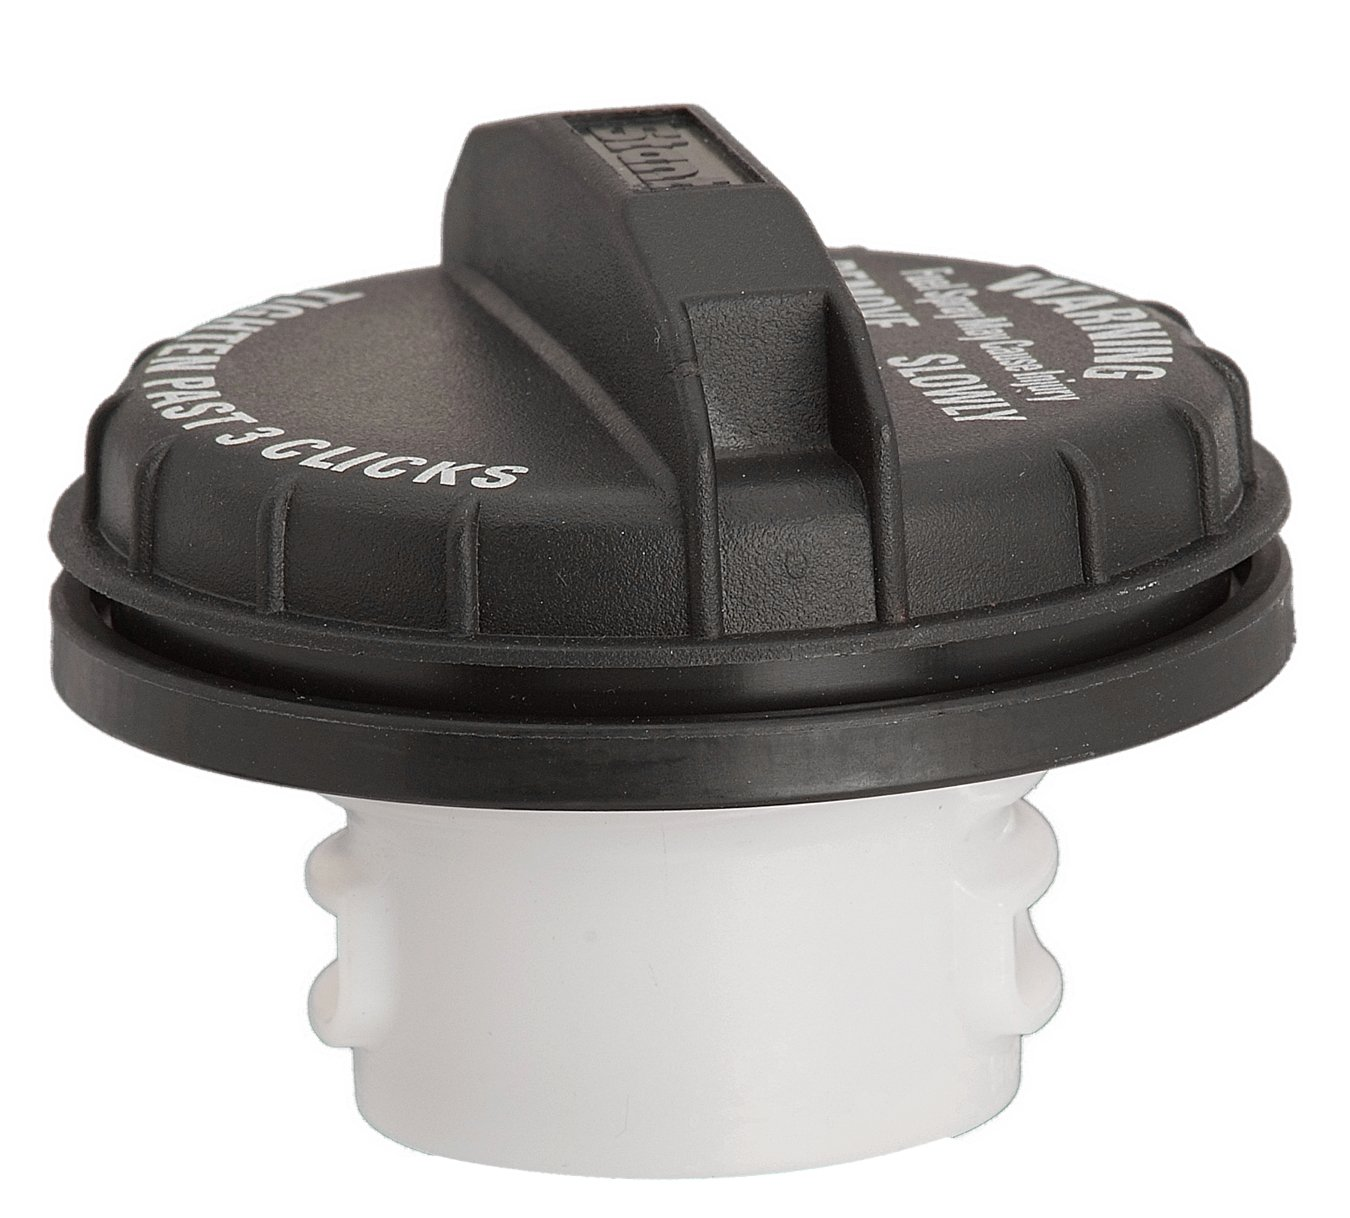 Stant 10851 Fuel Cap by Stant